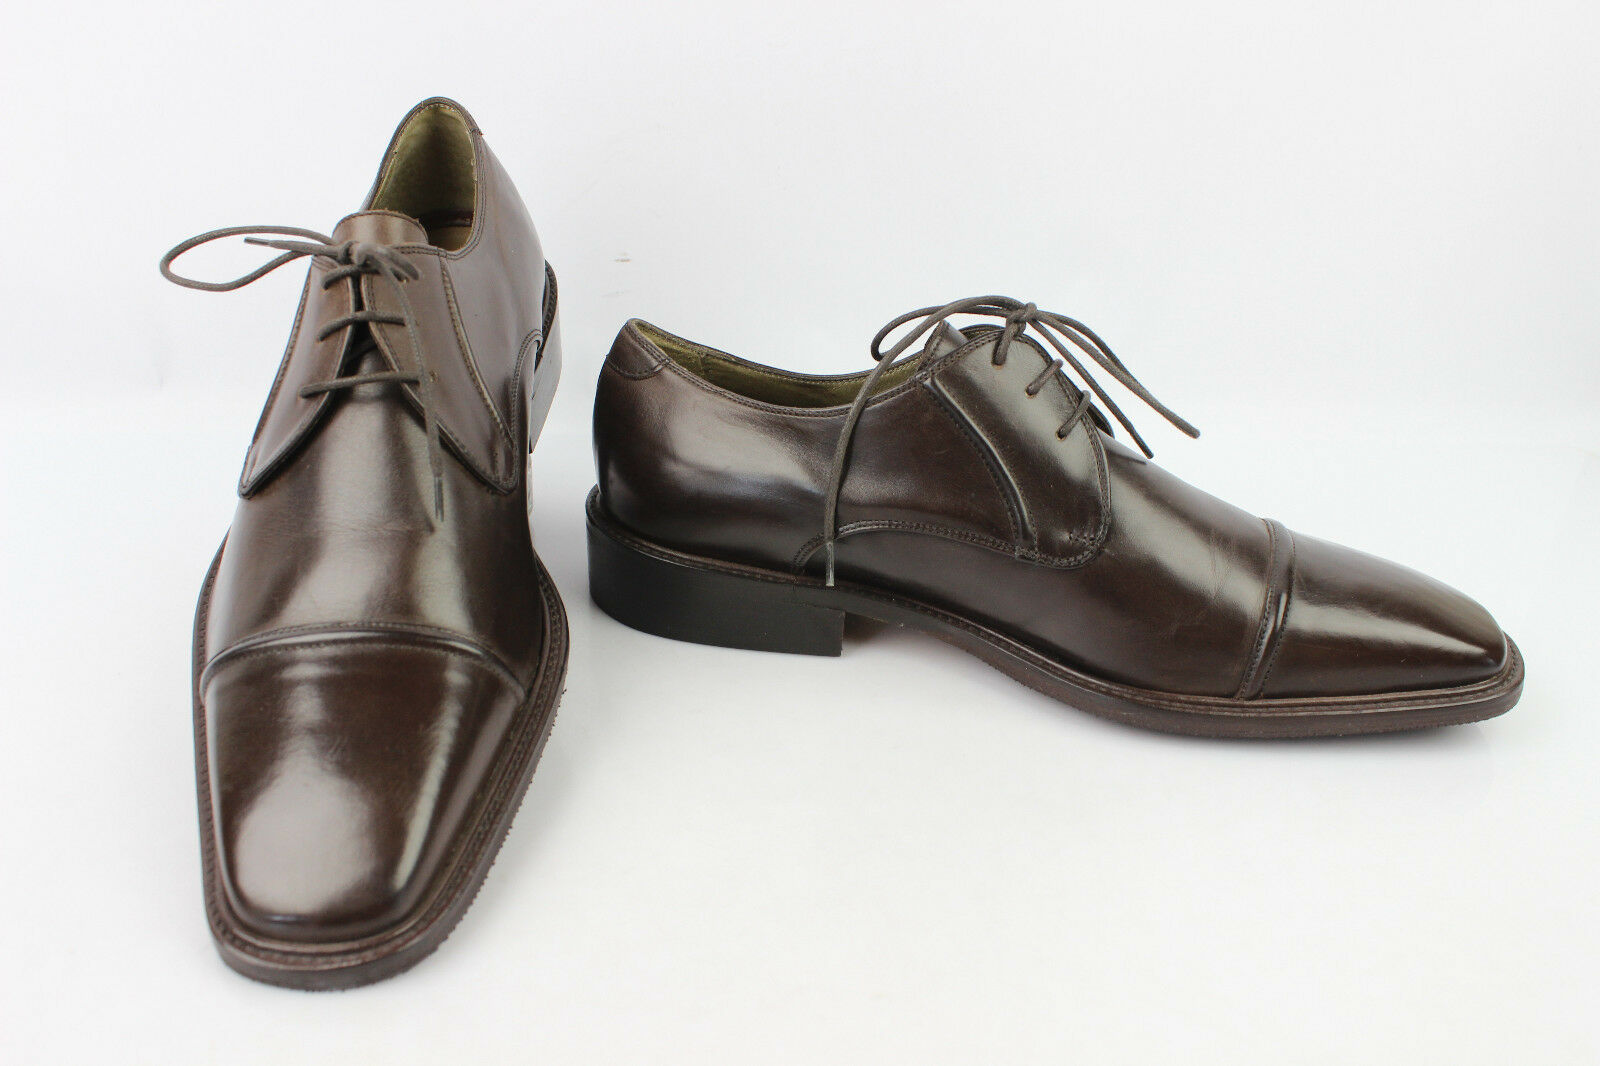 Derby shoes ZARA MAN All Brown Leather US 7 MINT